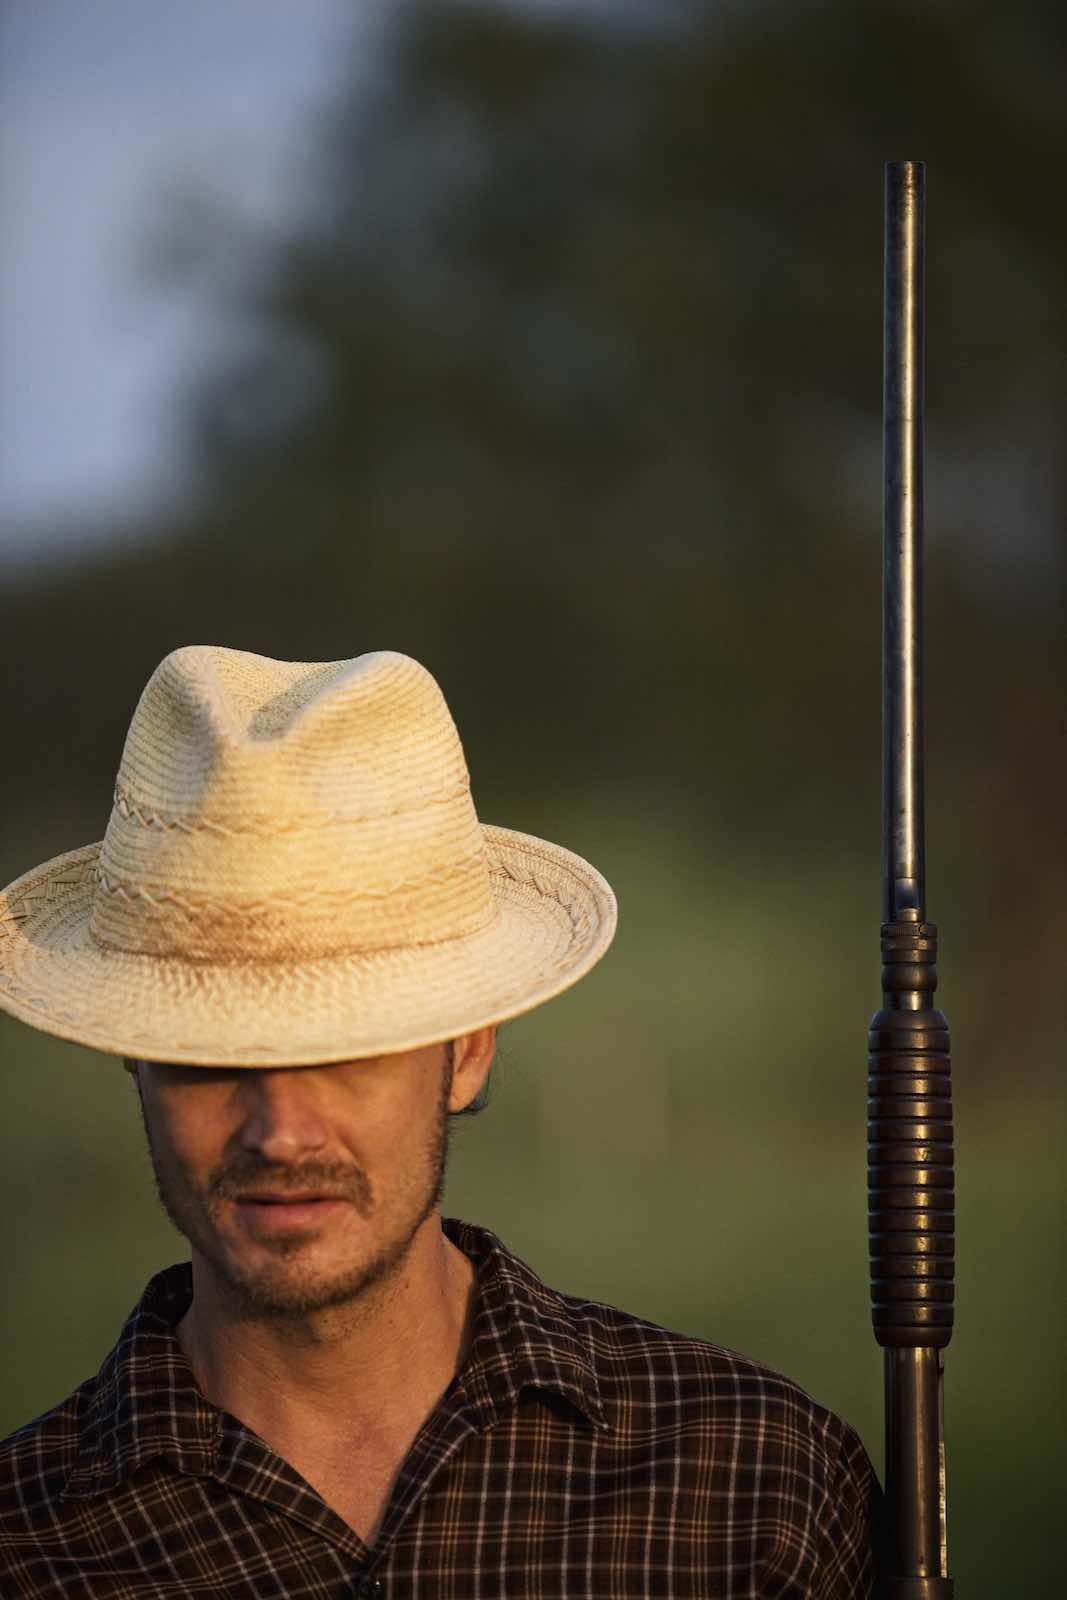 Jody Horton Photography - Hunter is a straw hat carrying his rifle parallel to his body.